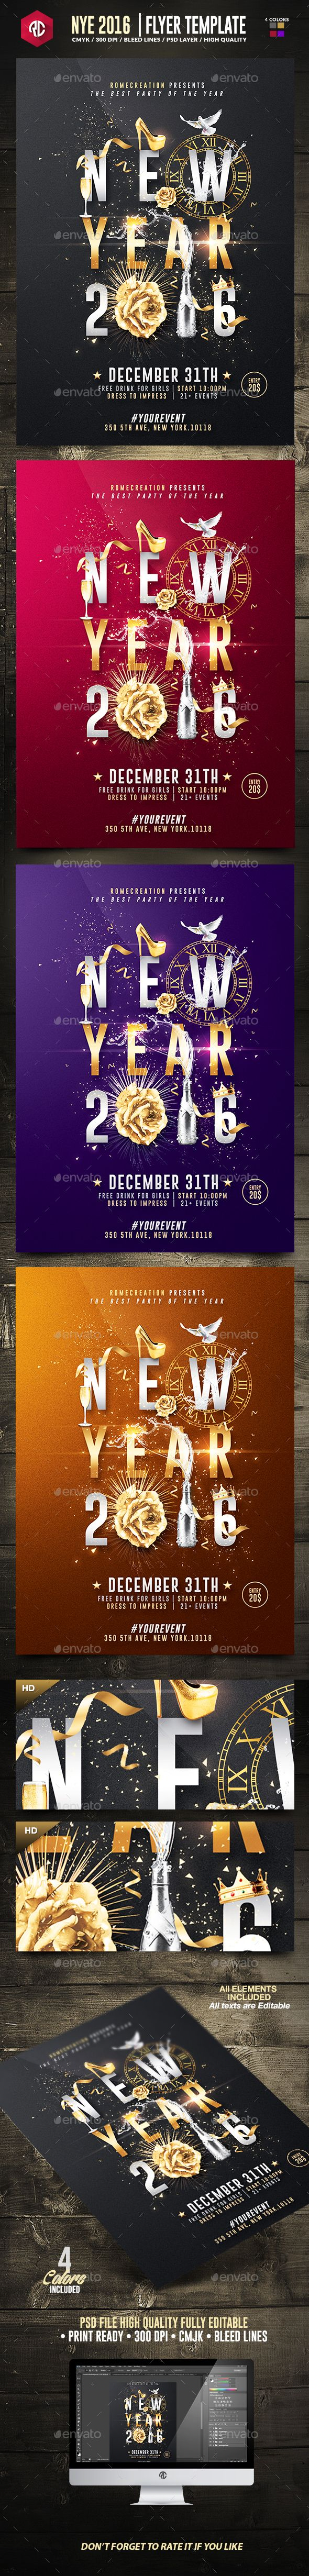 New year 2016 psd poster template curtidas new year 2016 psd poster template print templates toneelgroepblik Gallery